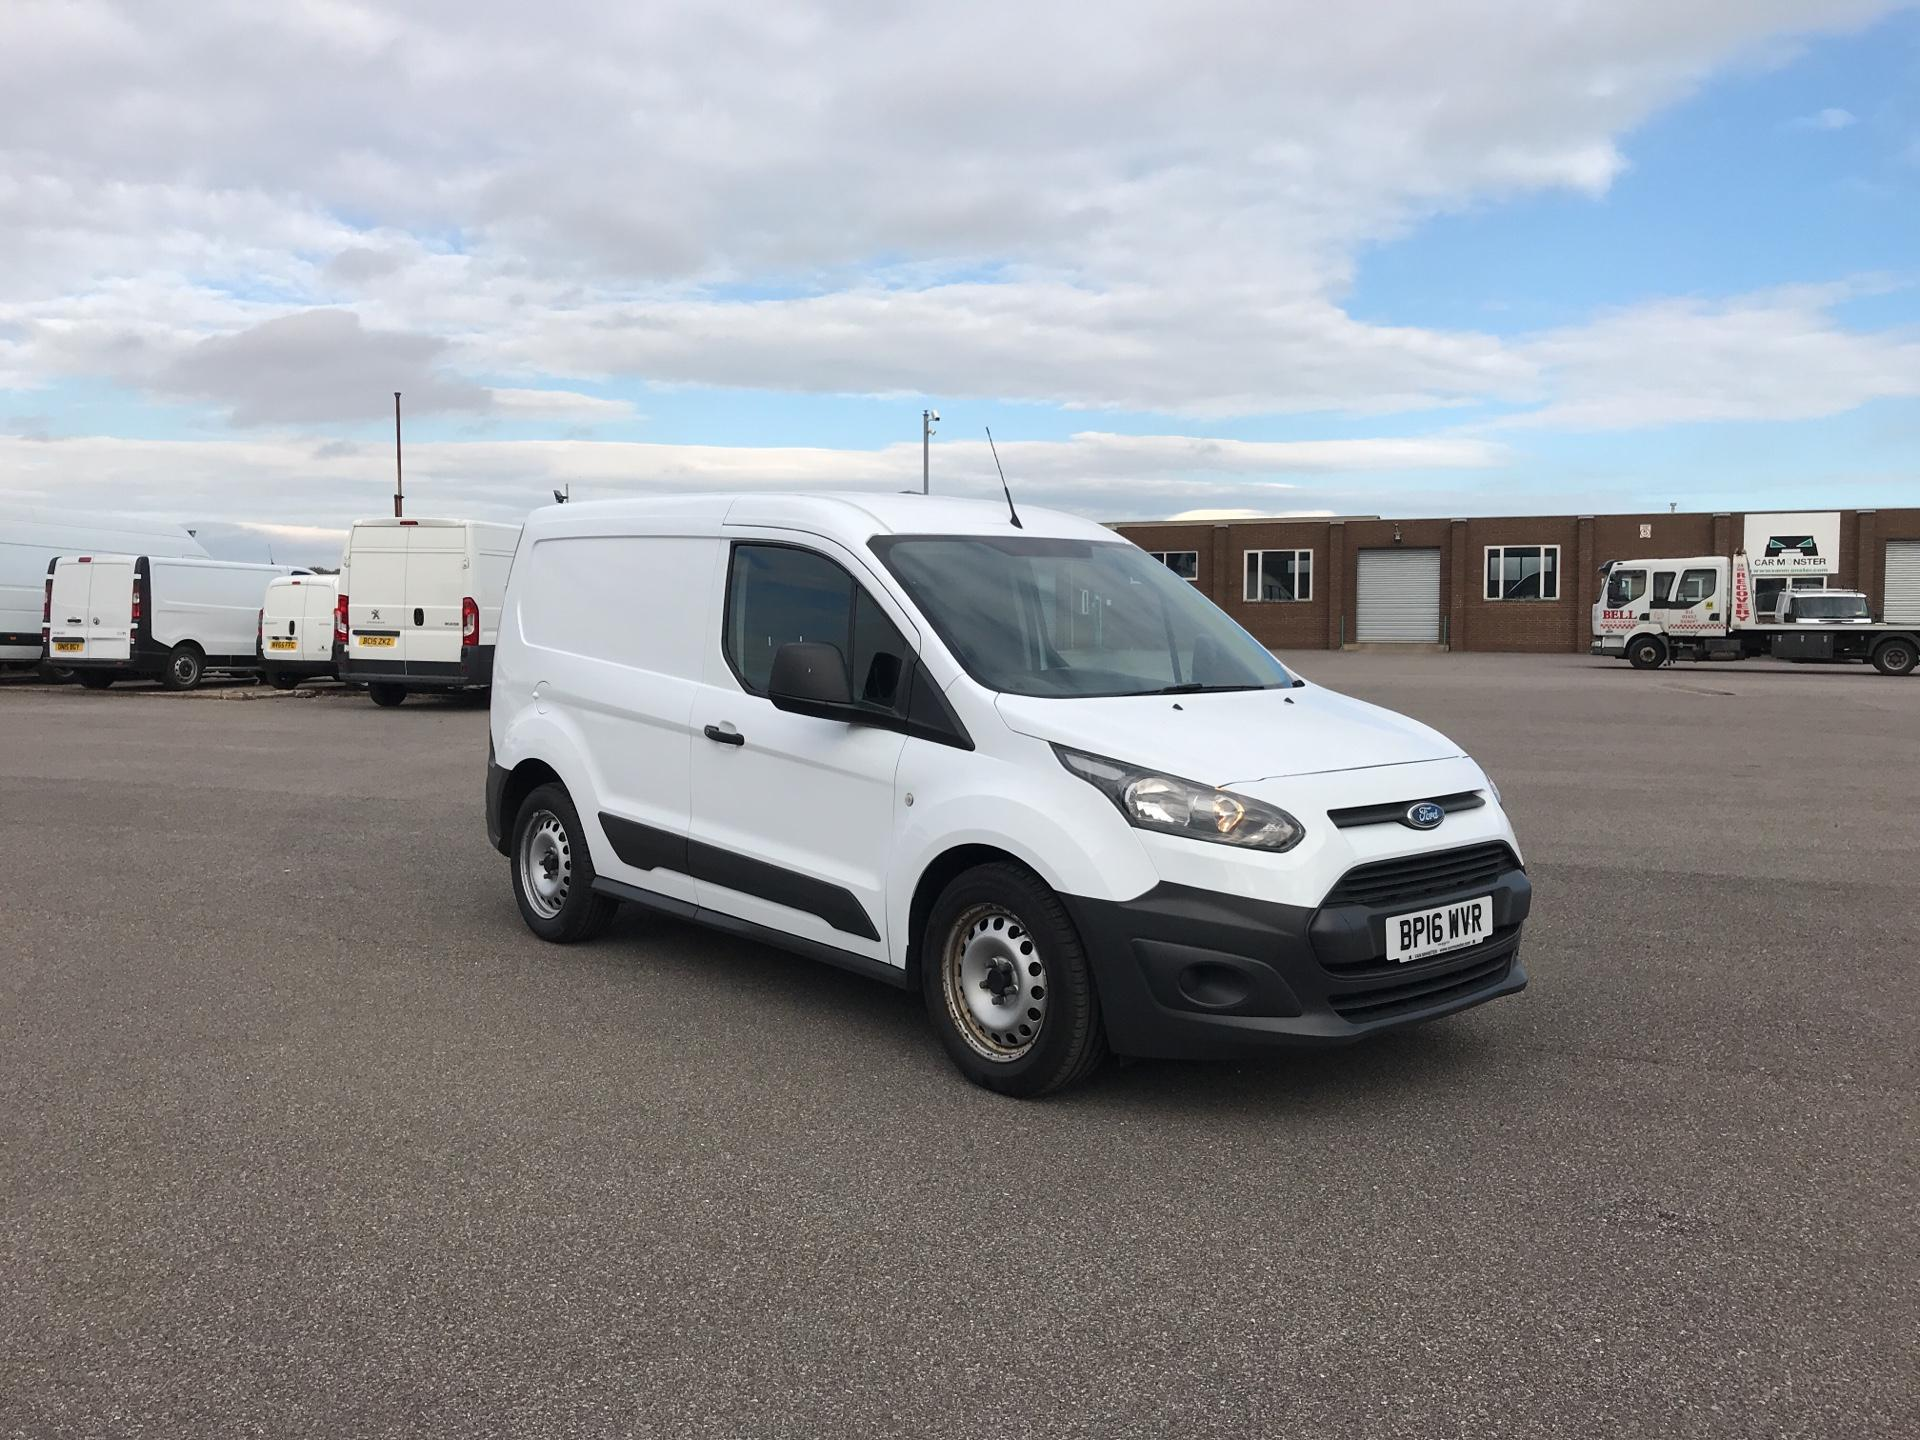 2016 Ford Transit Connect 200 L1 DIESEL 1.6 TDCI 75PS VAN EURO 5 (BP16WVR)